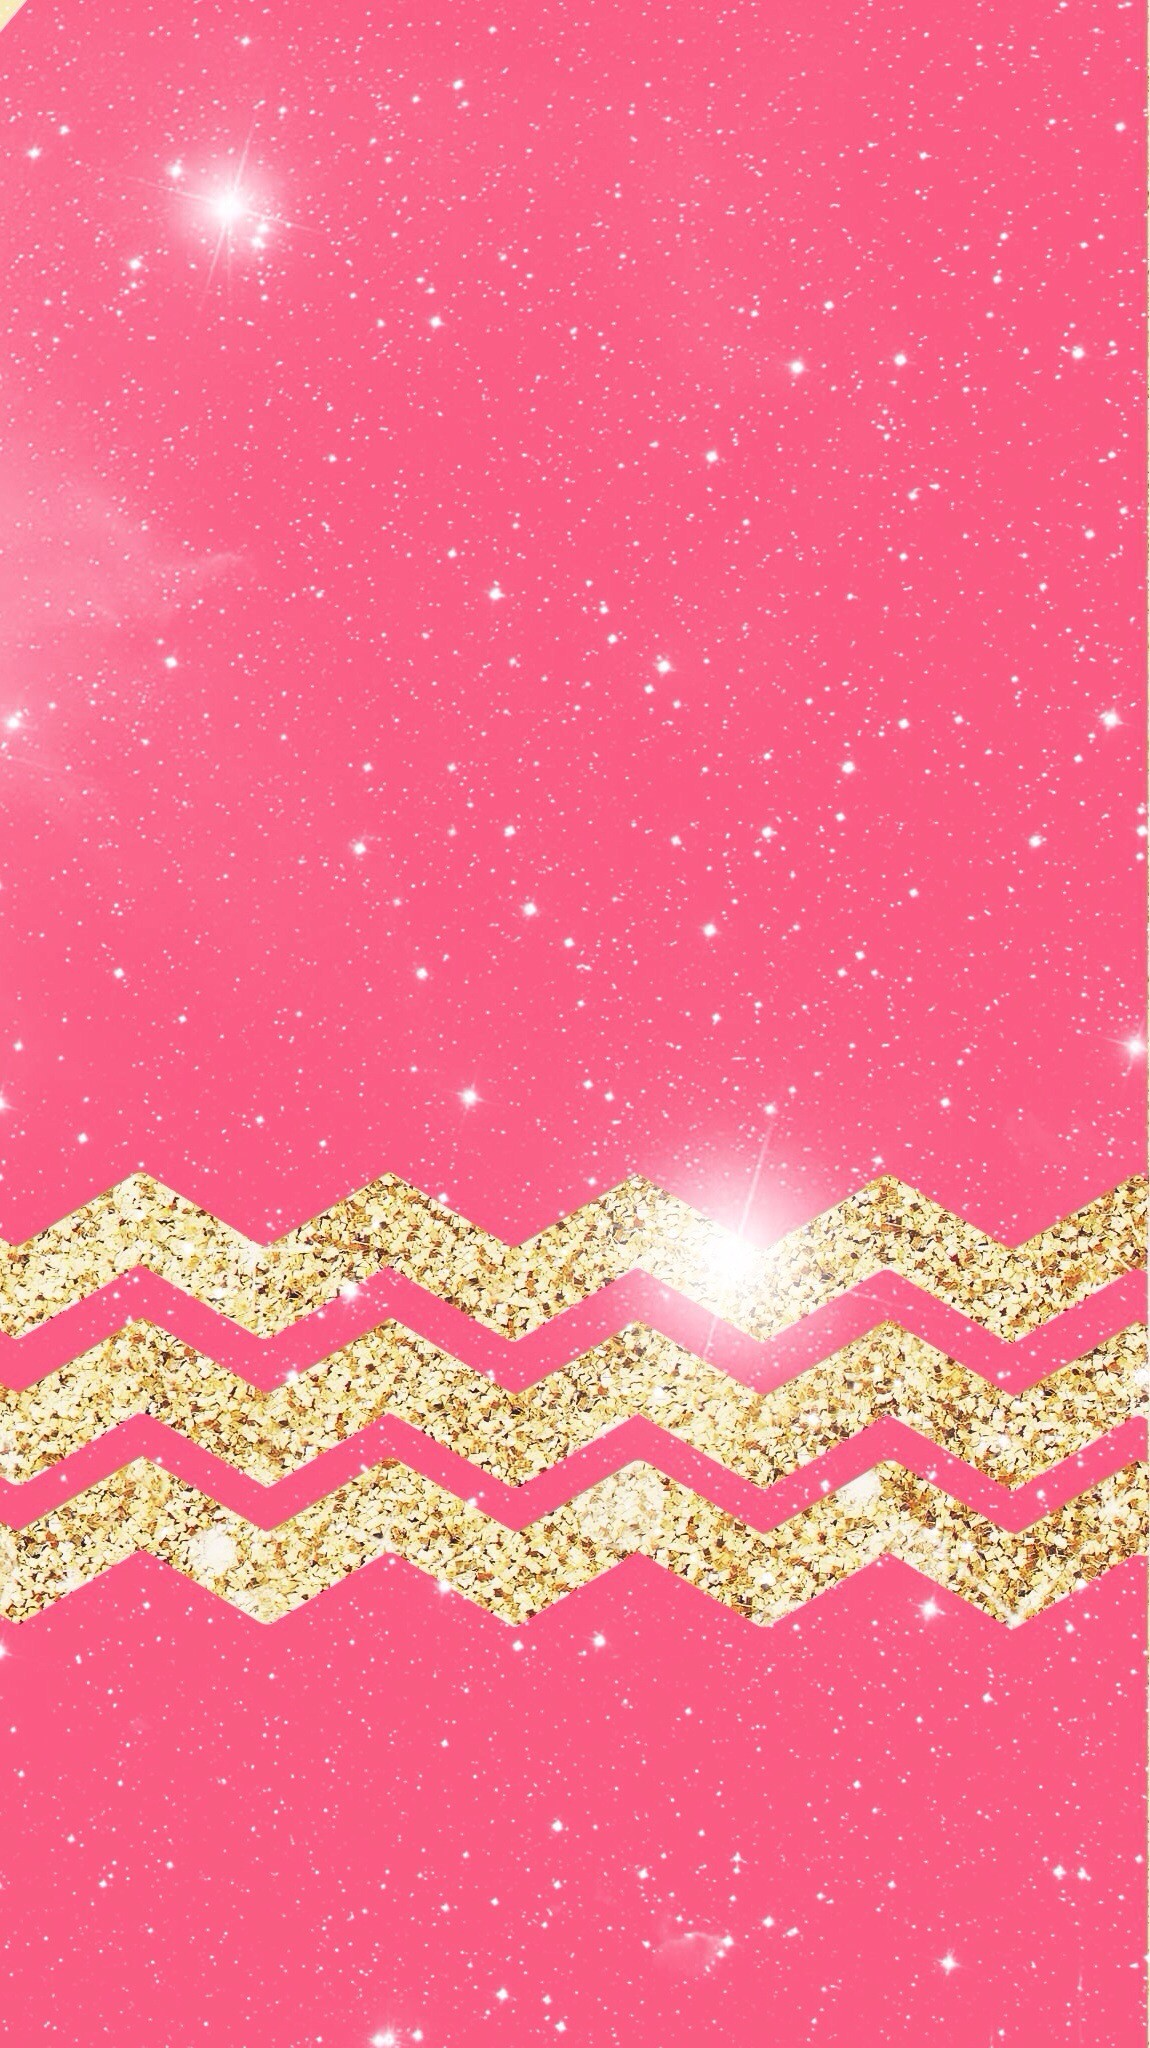 Bright Wallpapers For Iphone 6 Pink And Gold Background 183 ① Download Free Cool Backgrounds